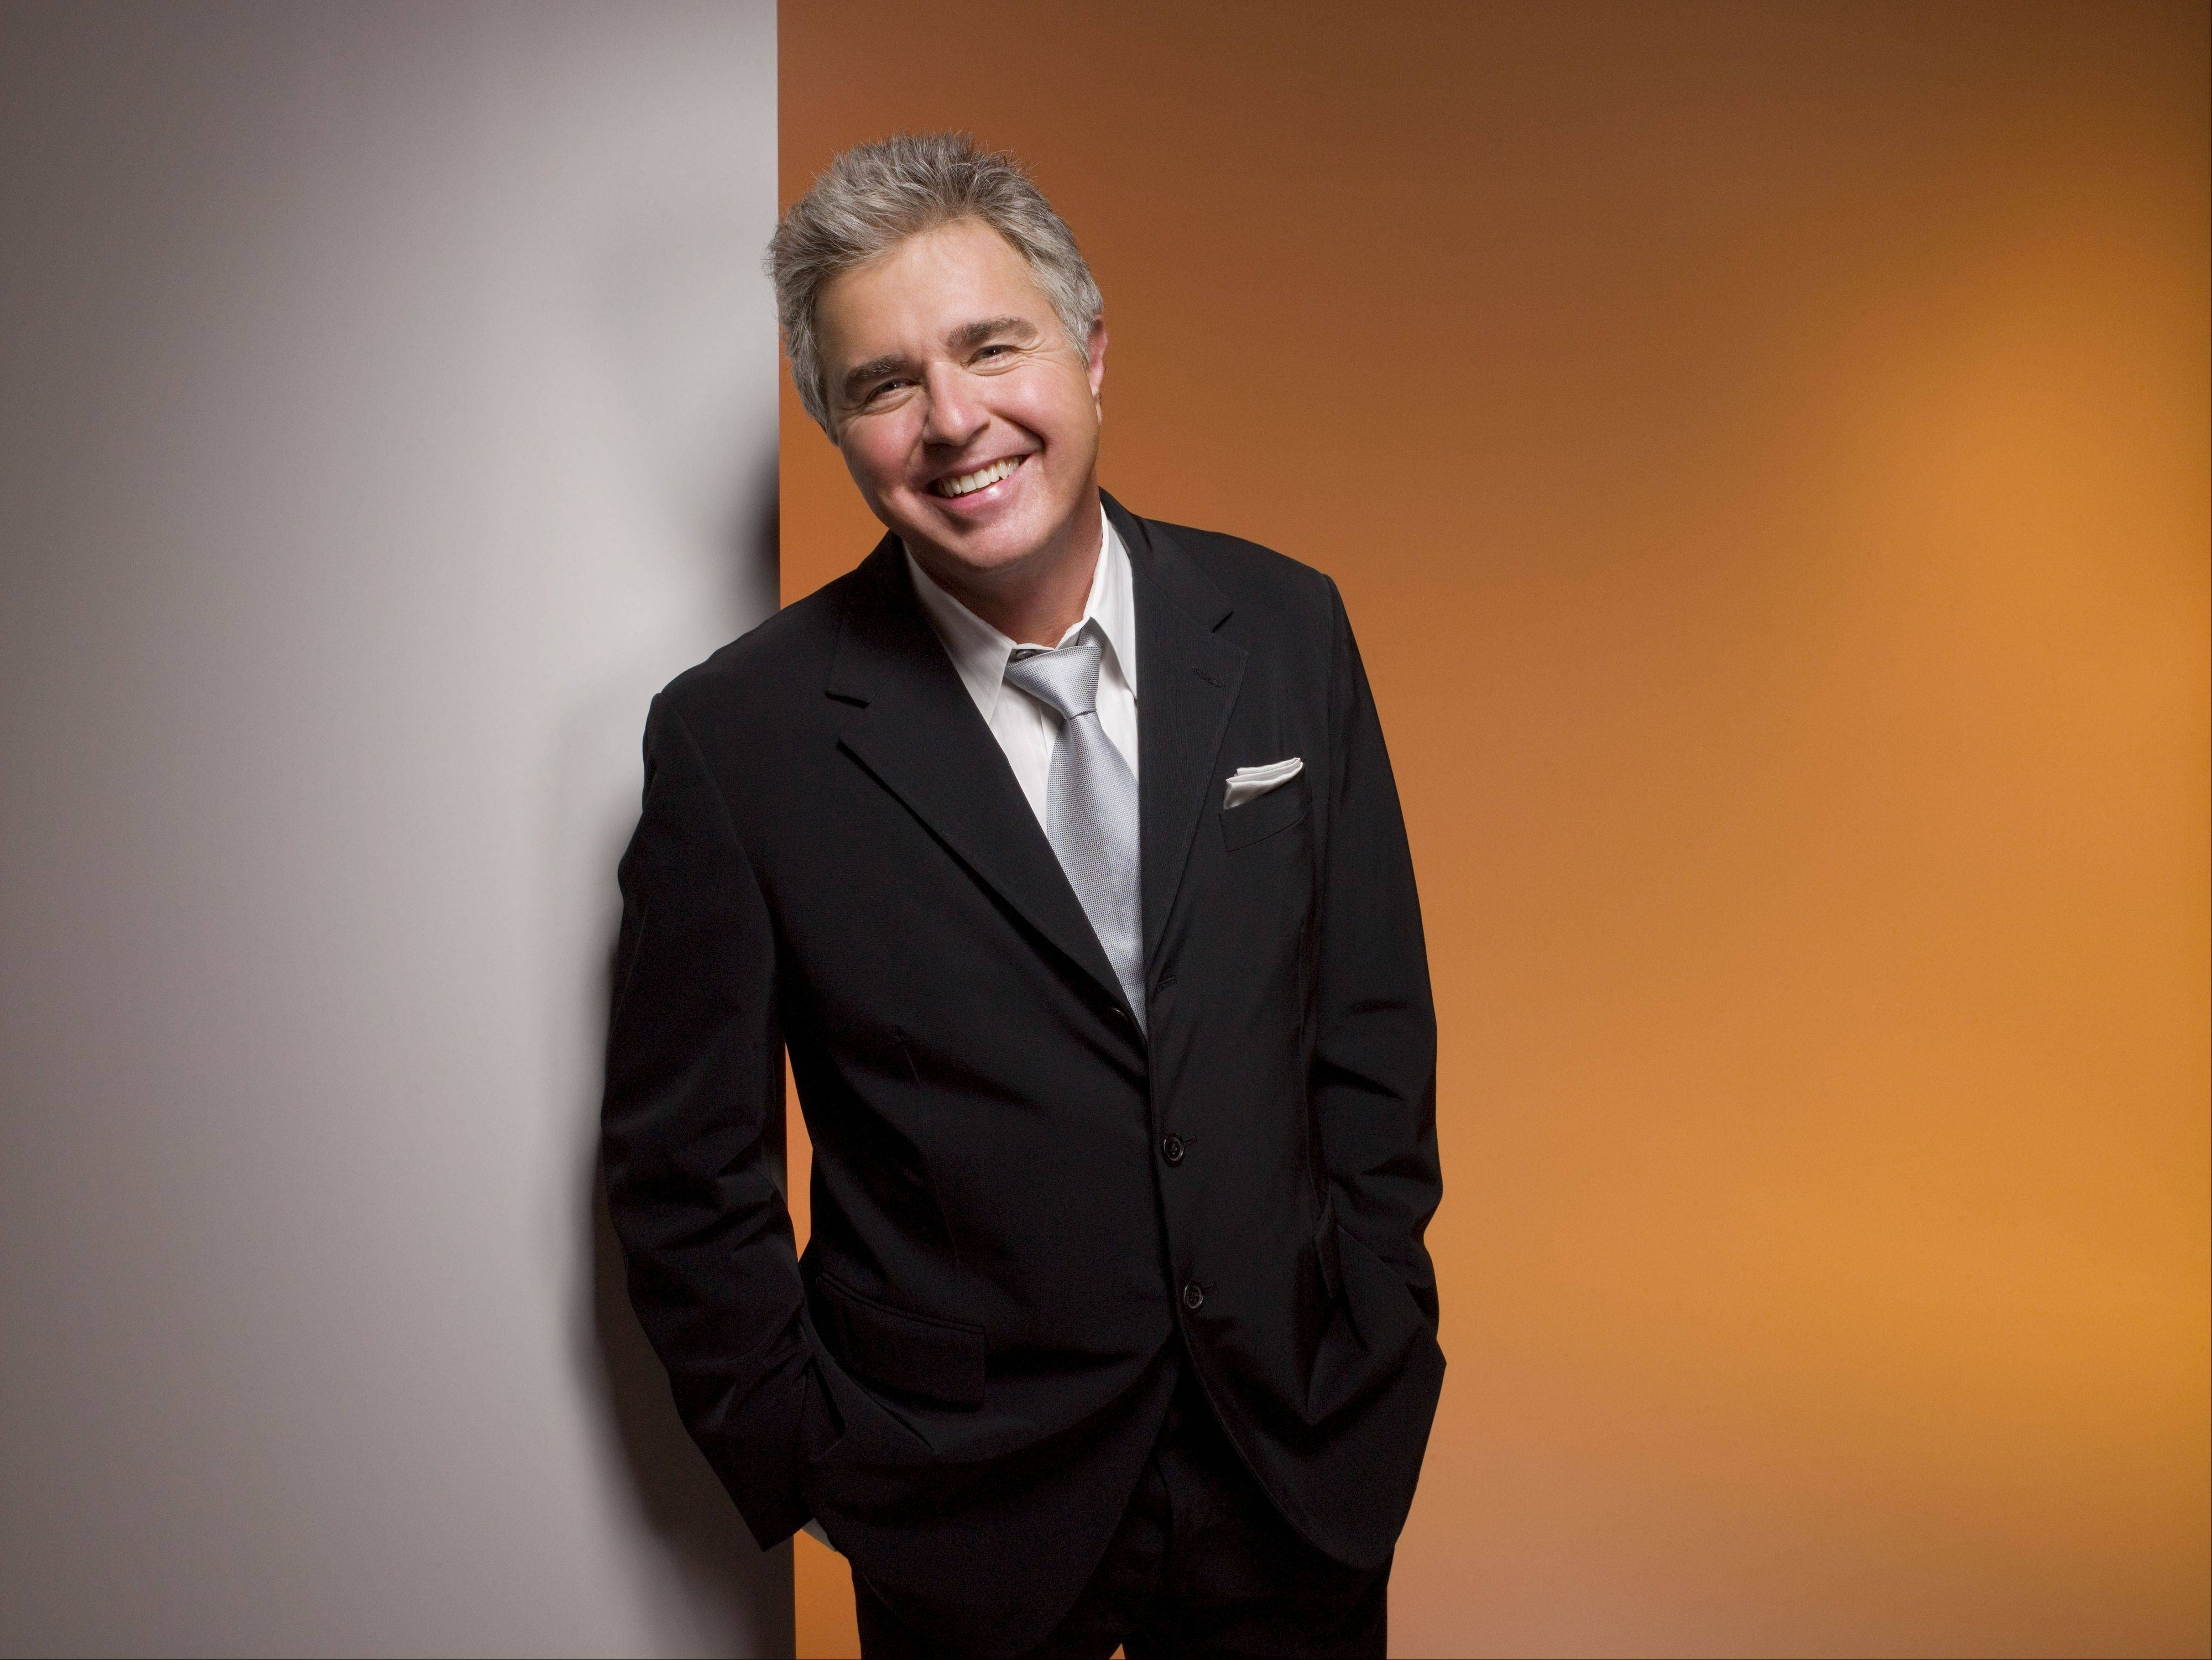 Steve Tyrell plays jazz standards and more at Viper Alley in Lincolnshire on Friday and Saturday, Nov. 2-3.